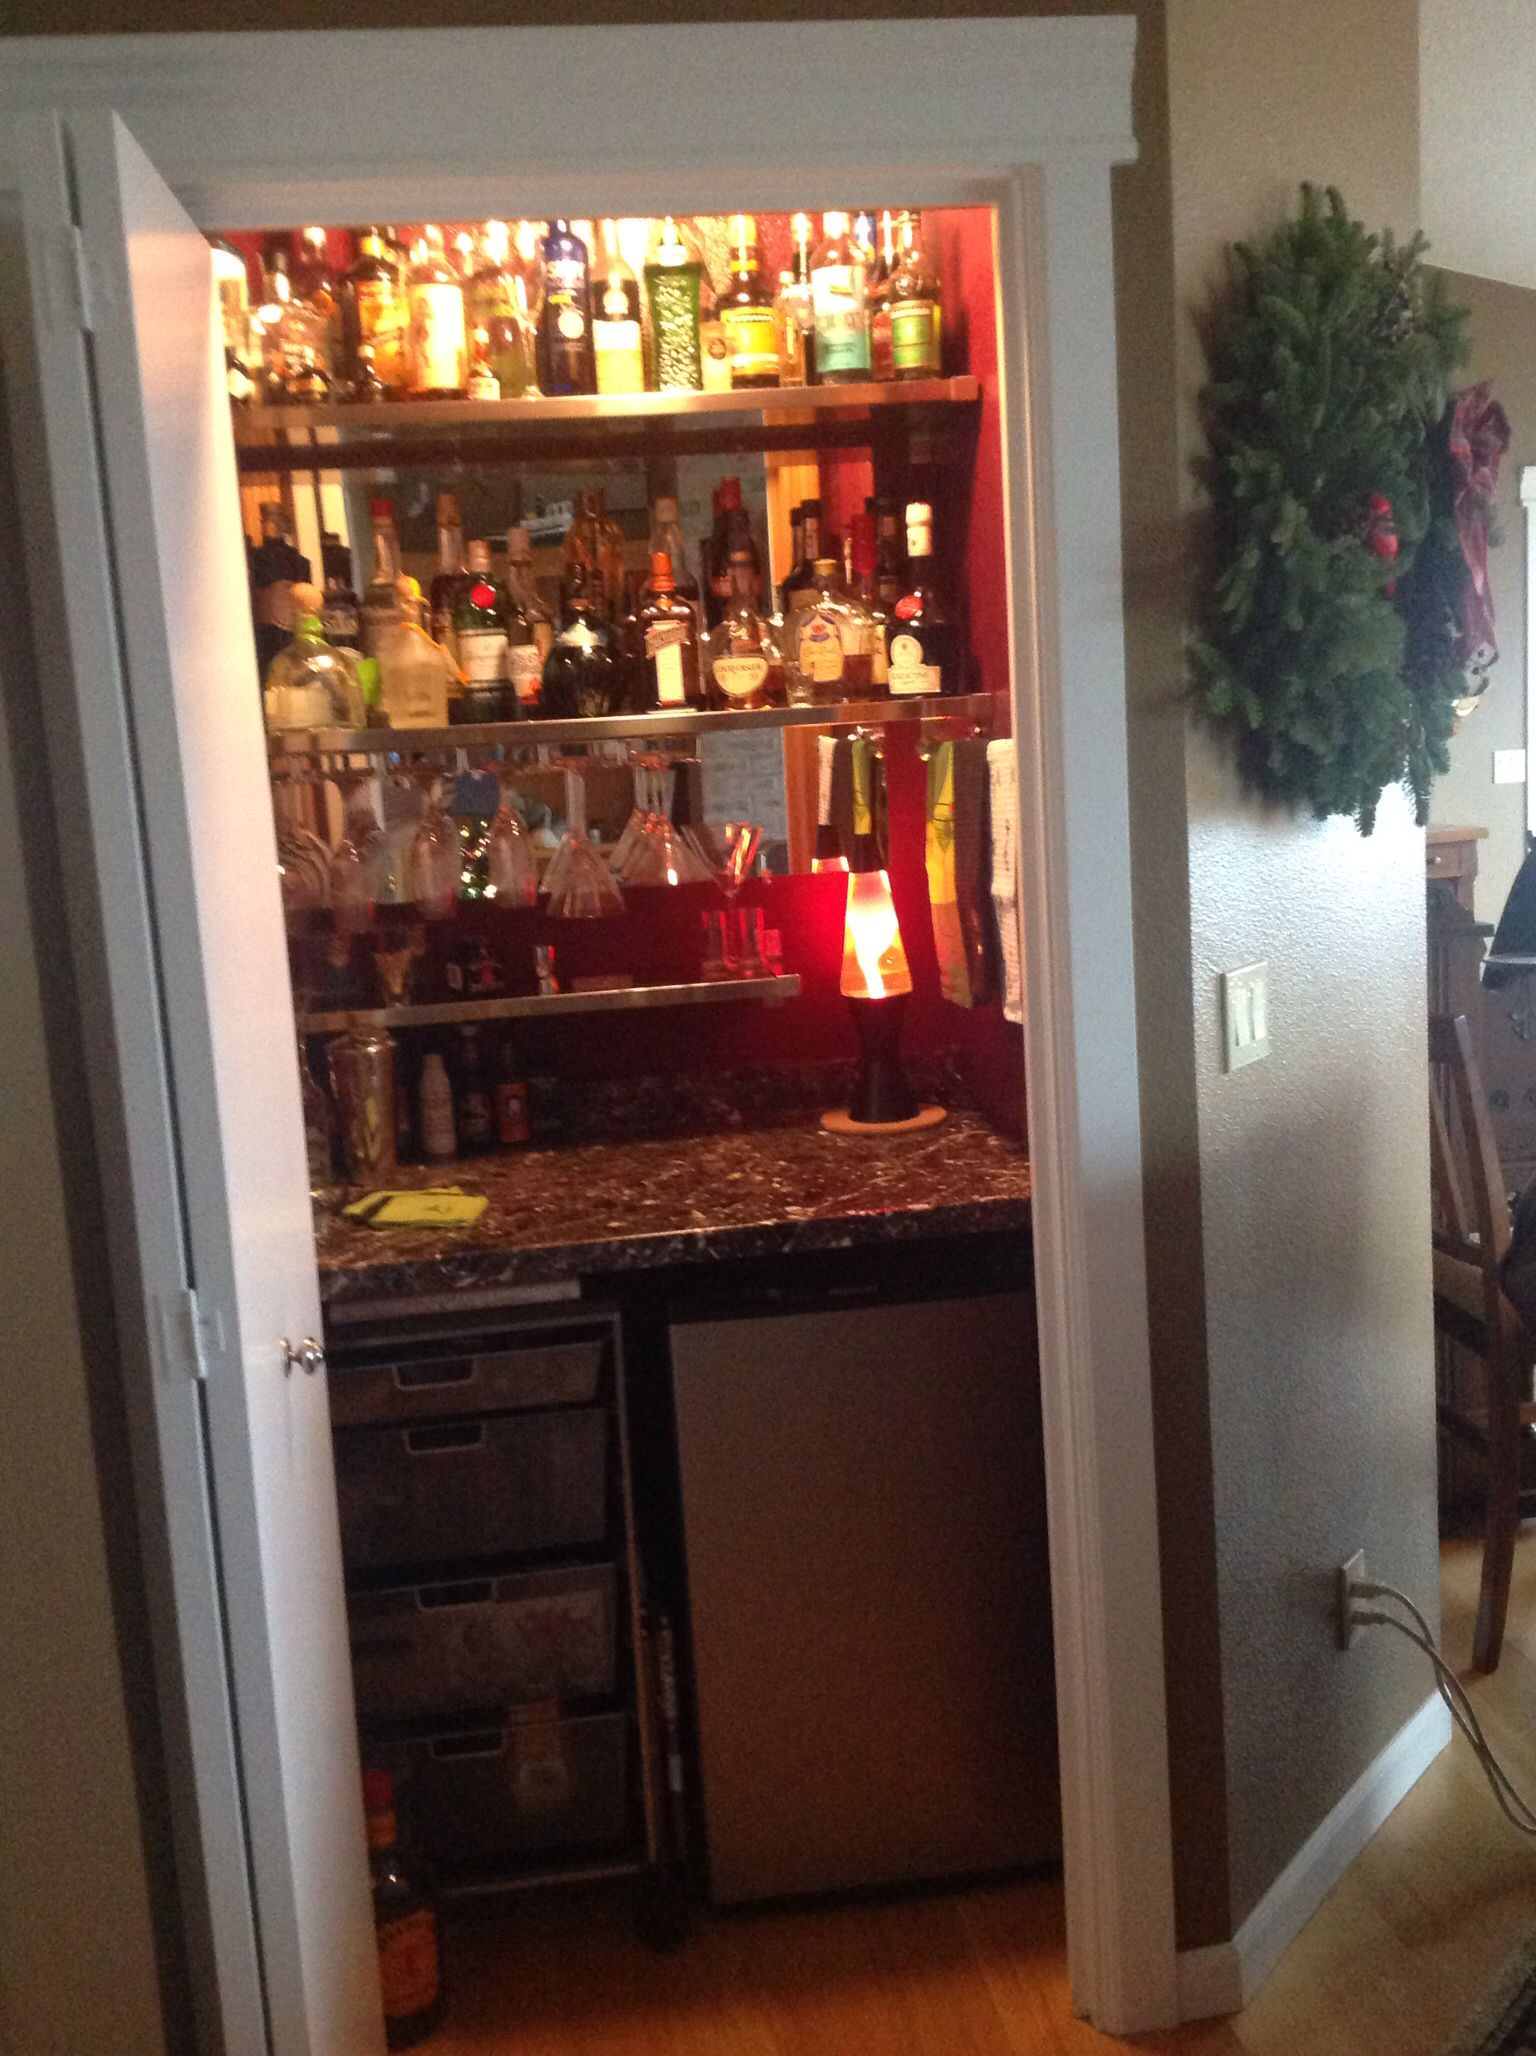 Home bar design-ideen inspiration from pinterest a year who comes to fruition thanks arn